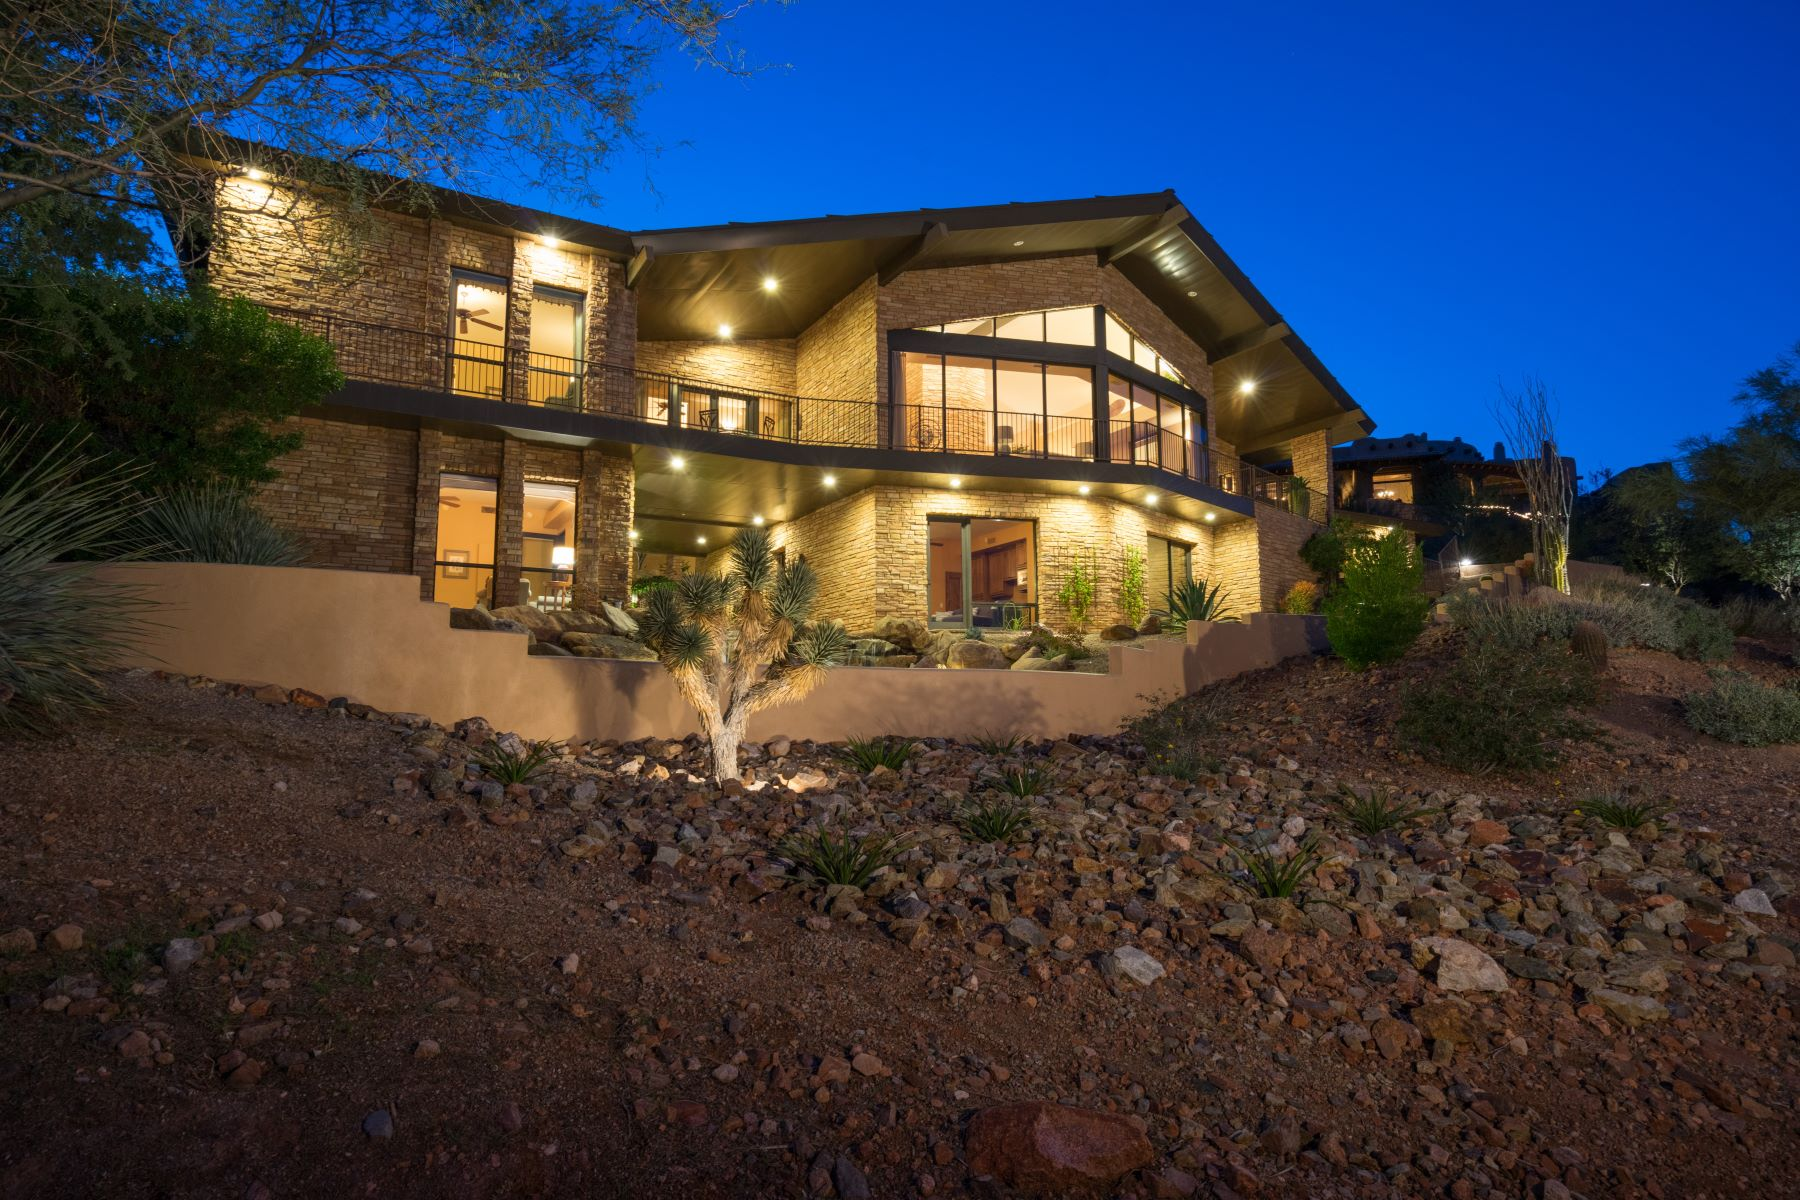 Single Family Home for Sale at Soft contemporary home with endless views 9336 N Lava Bluff Trl Fountain Hills, Arizona, 85268 United States